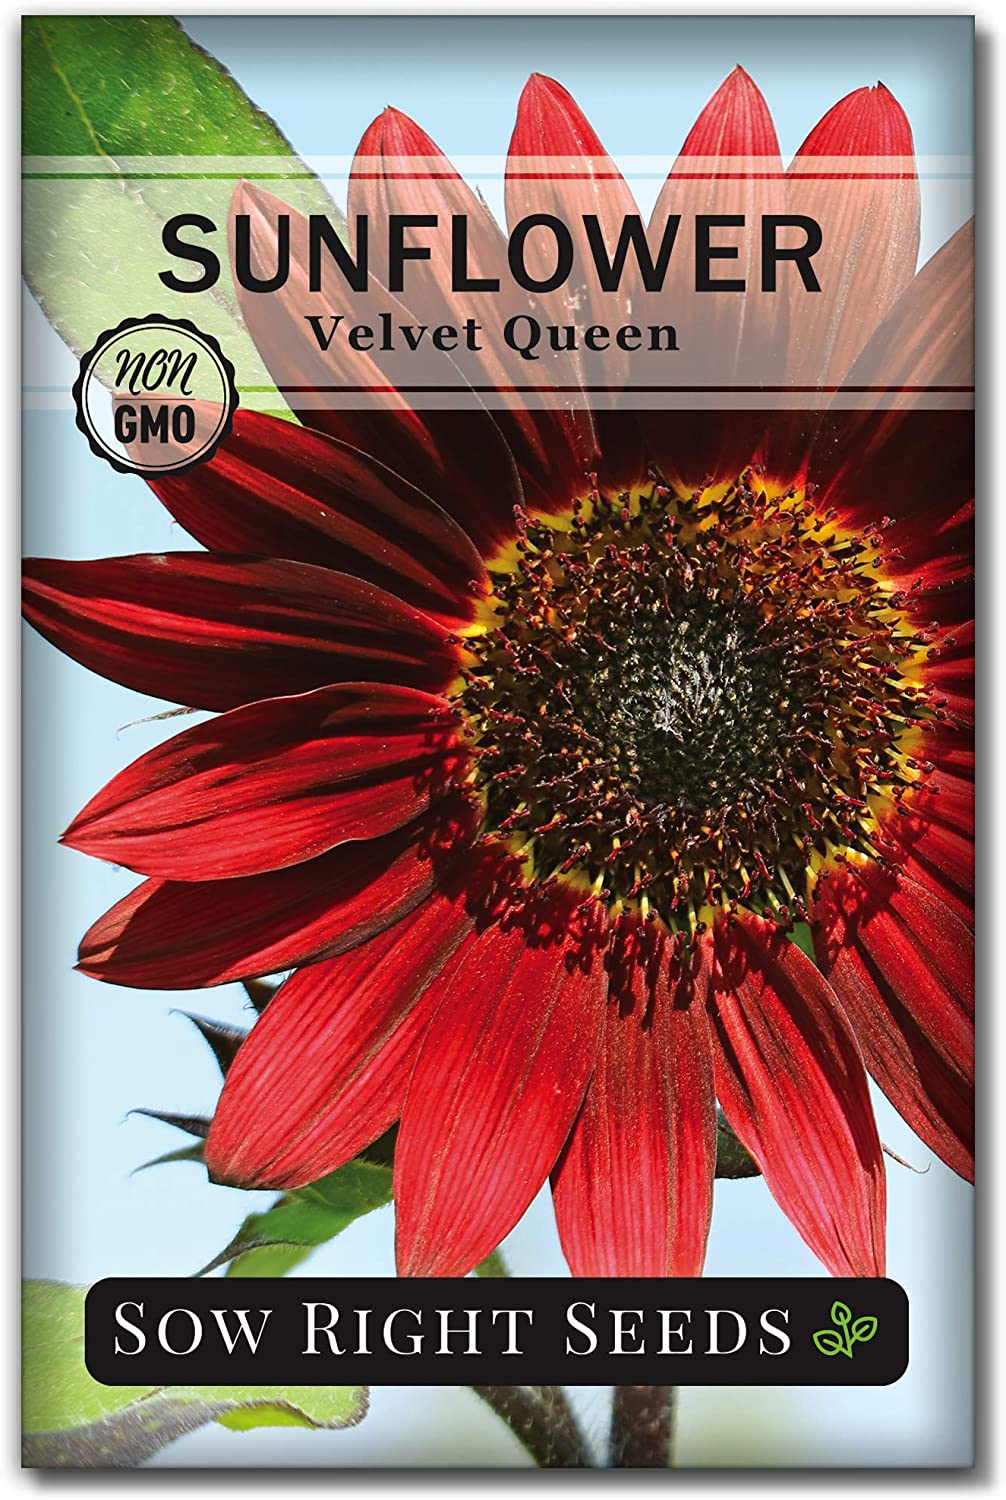 Sow Max 76% OFF Right Seeds - Velvet Queen for Full Planting- Sunflower Seed Deluxe